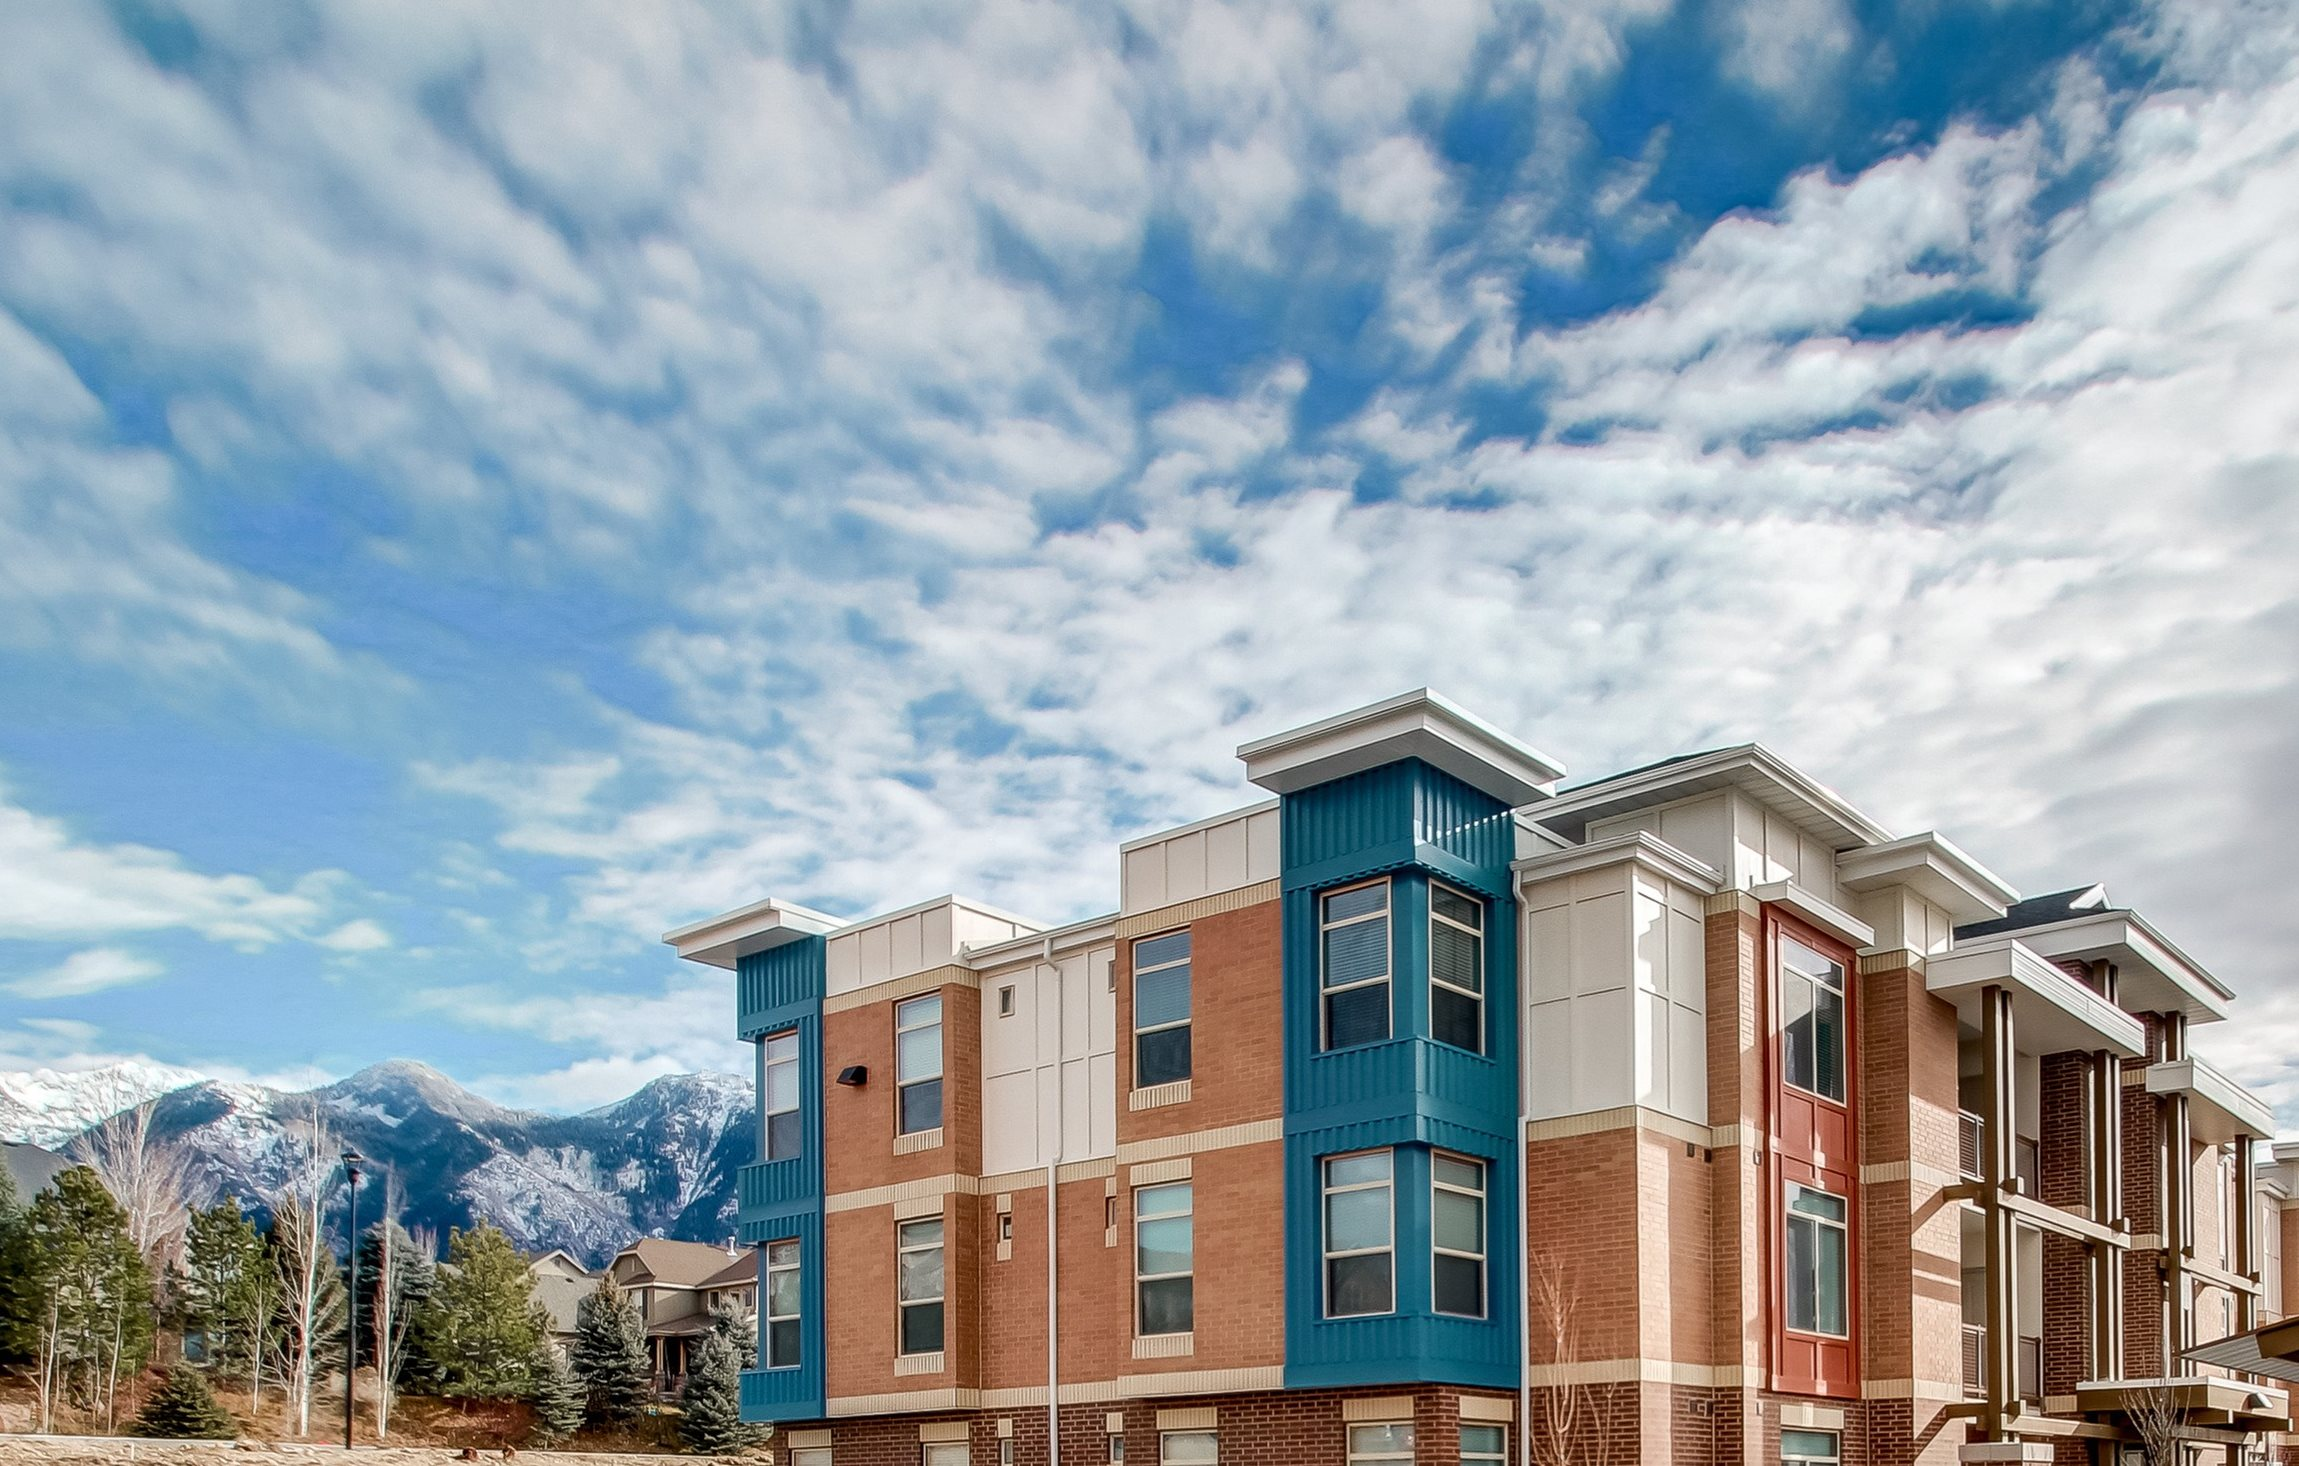 Muti Colored Apartment Building Exterior with Trees Carports and Mountains in the Background